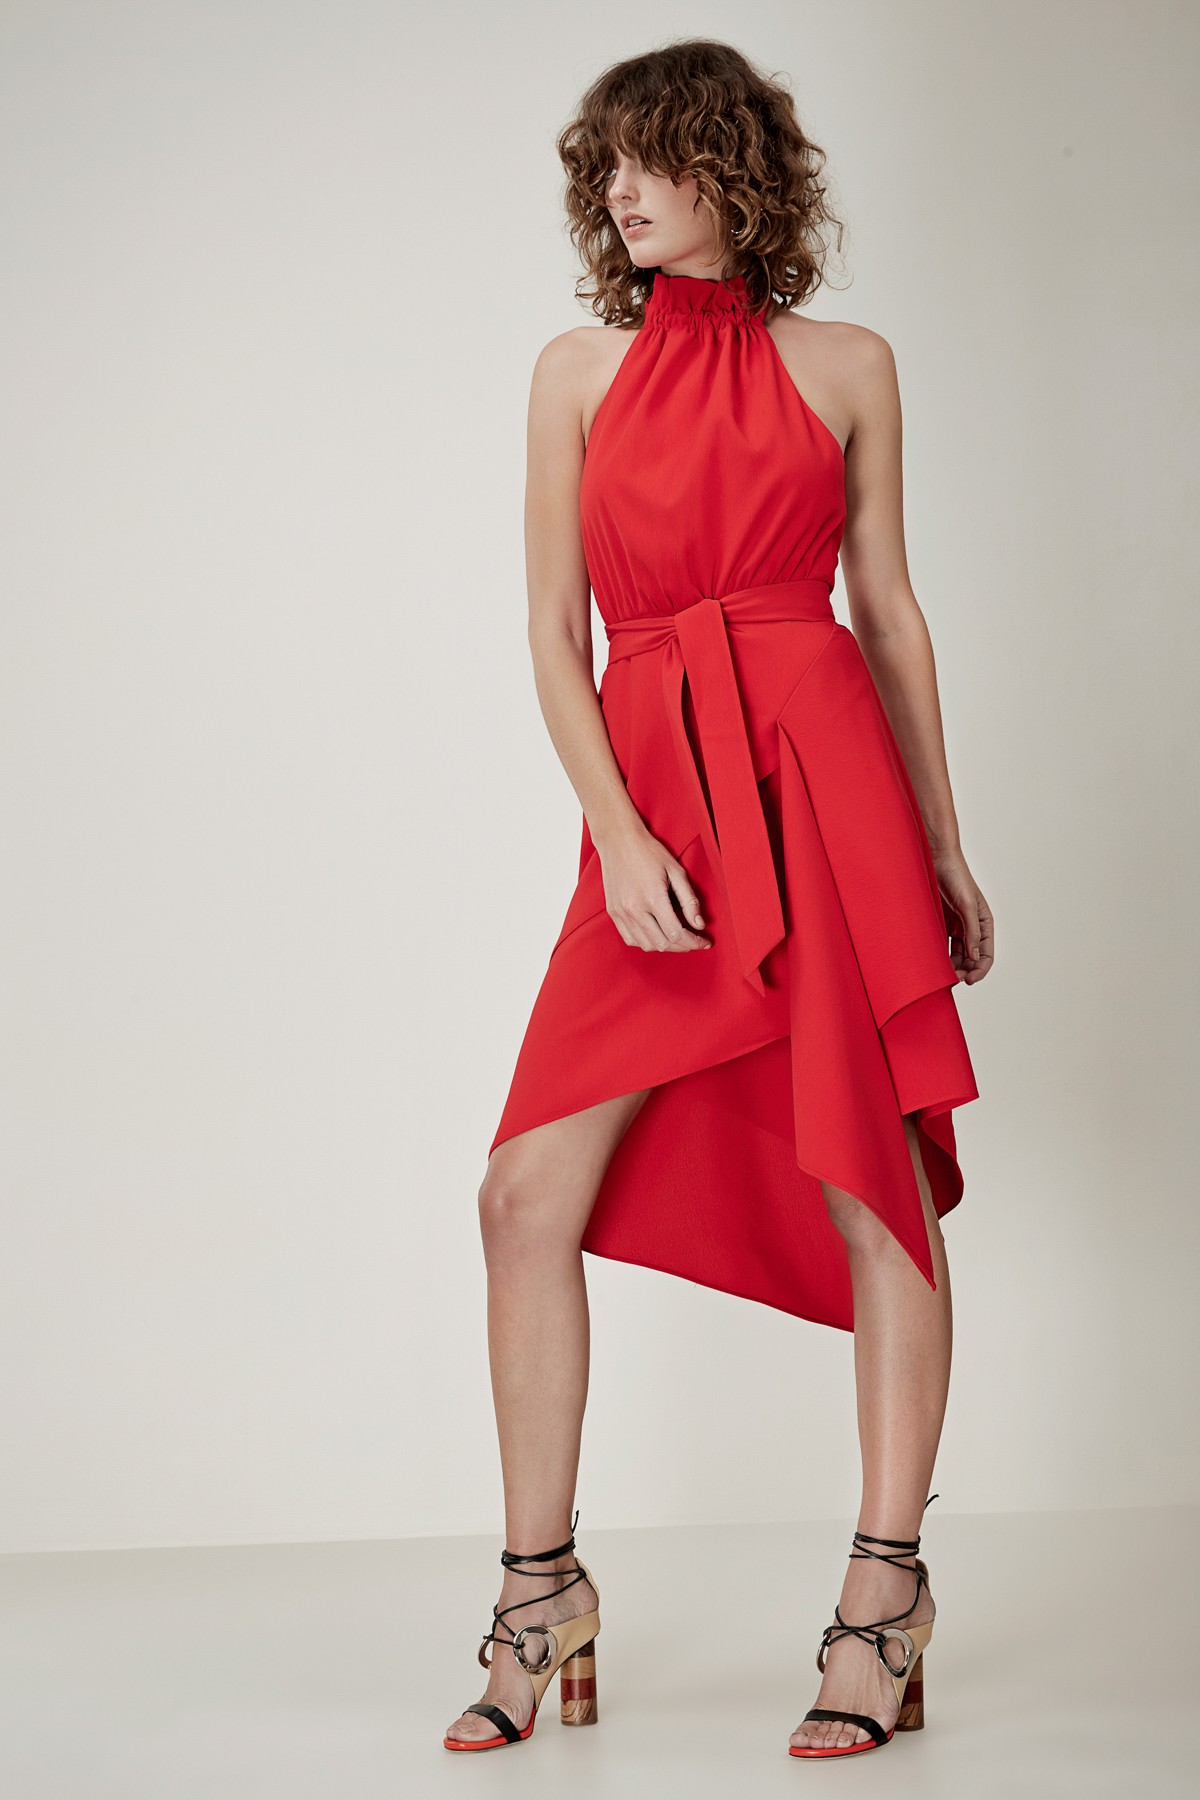 C/MEO COLLECTIVE Out Of Line Dress.